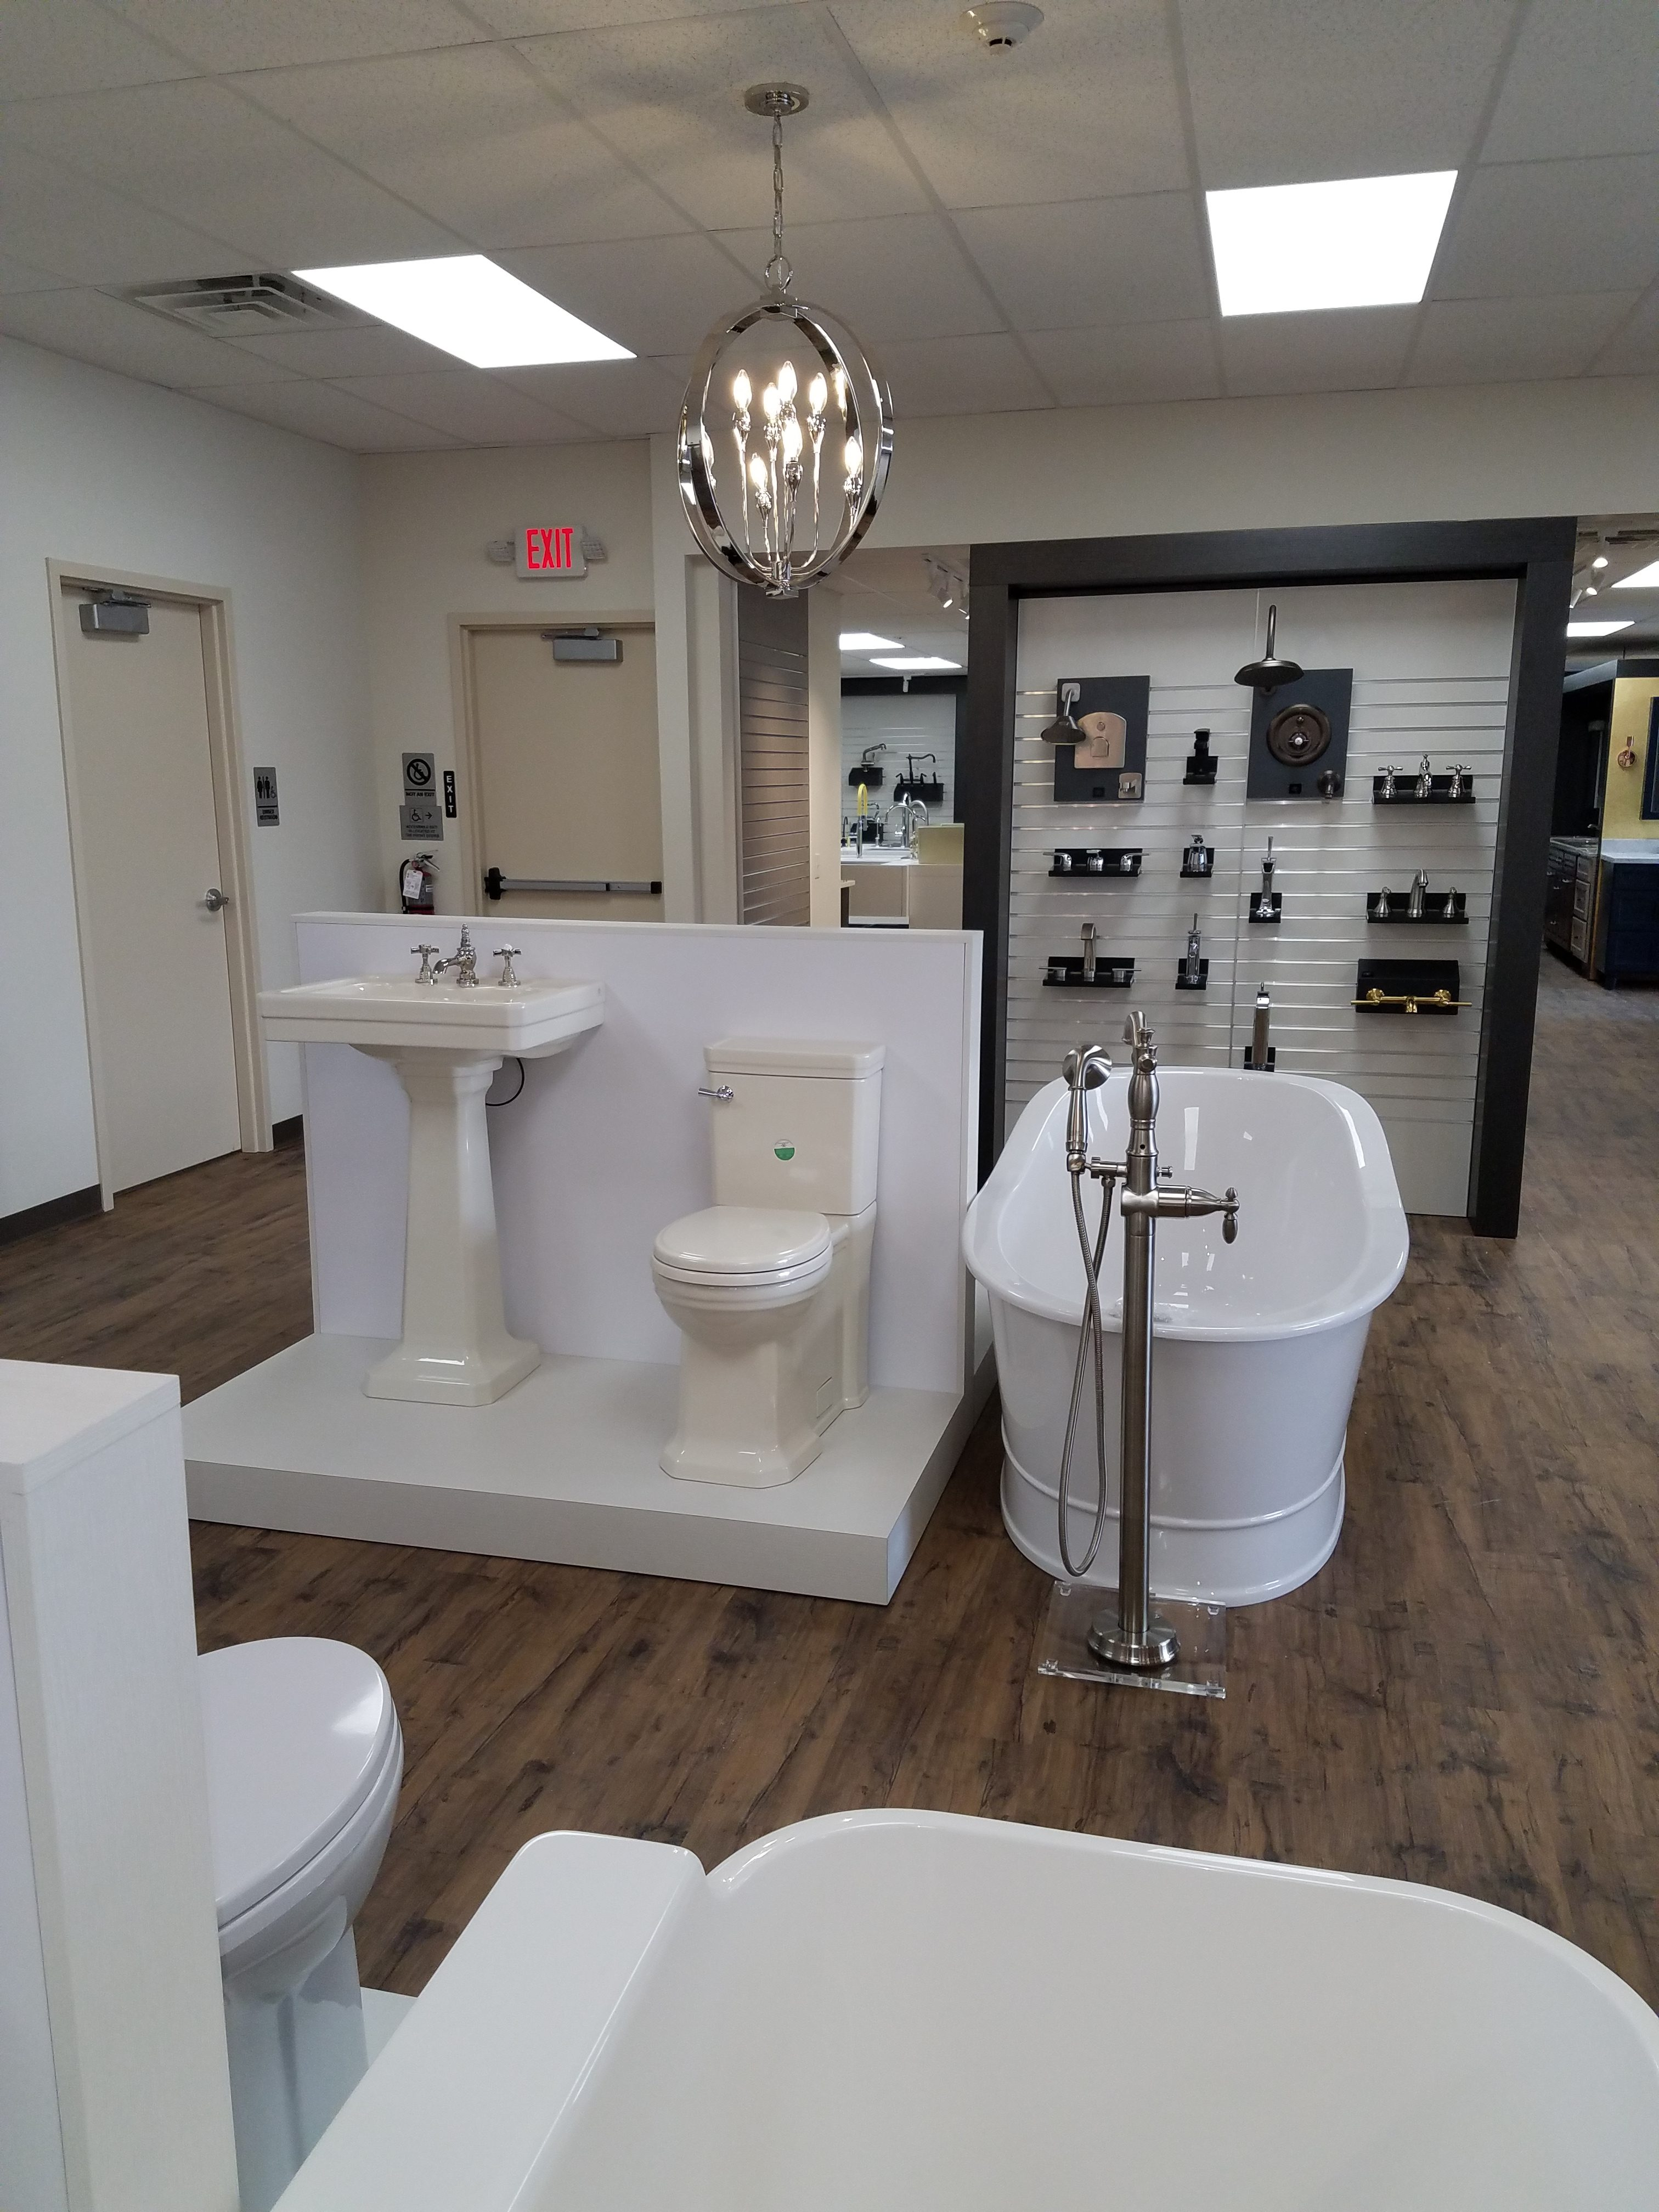 Gsi doylestown showroom now open and better than ever - Bathroom showrooms bucks county pa ...